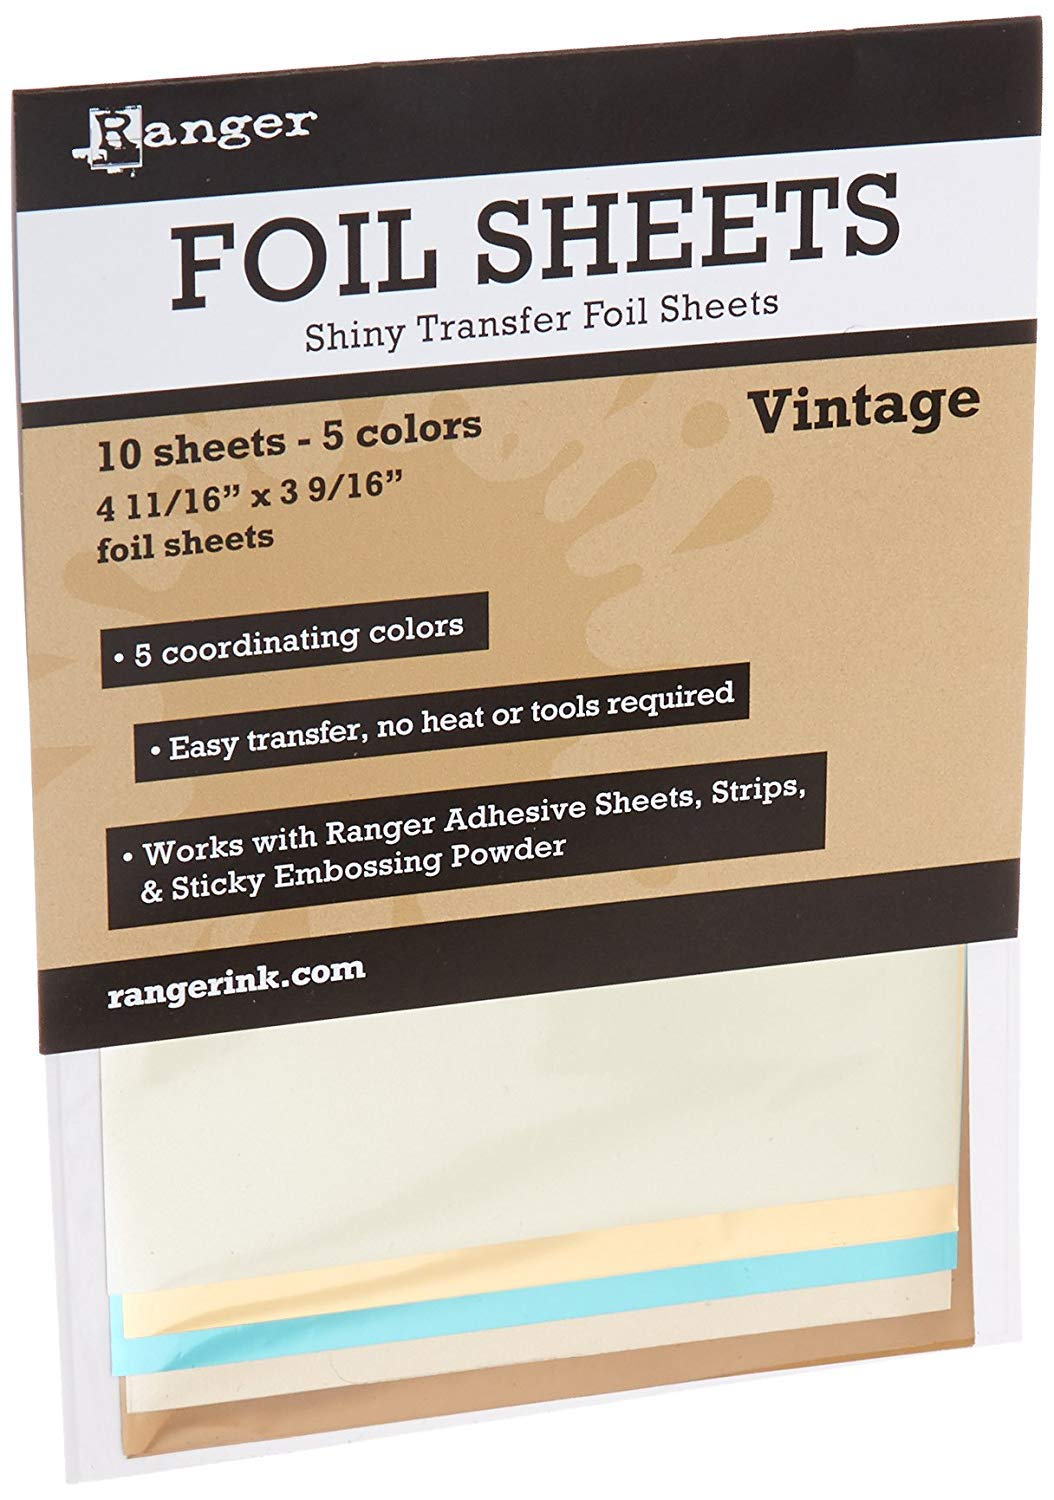 Vintage Foil Sheets (10 Sheets - 5 Colors) Luscombe G T Luscombe ISF40576 NON-CLASSIFIABLE